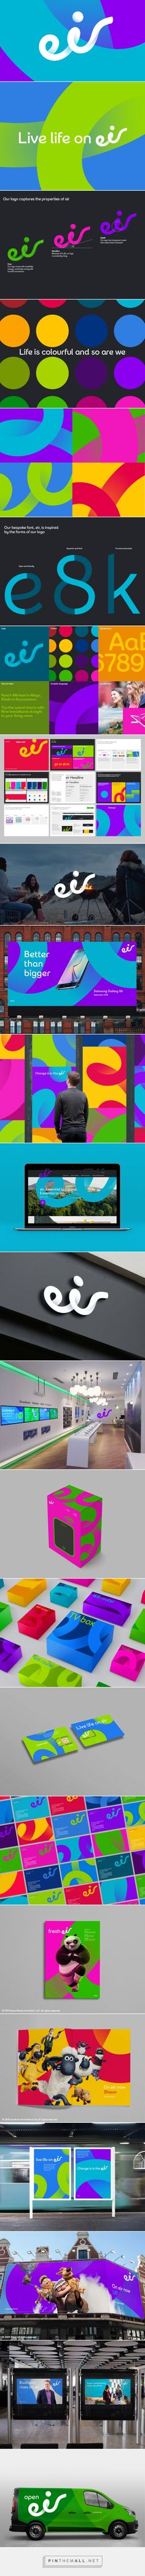 eir | Moving Brands